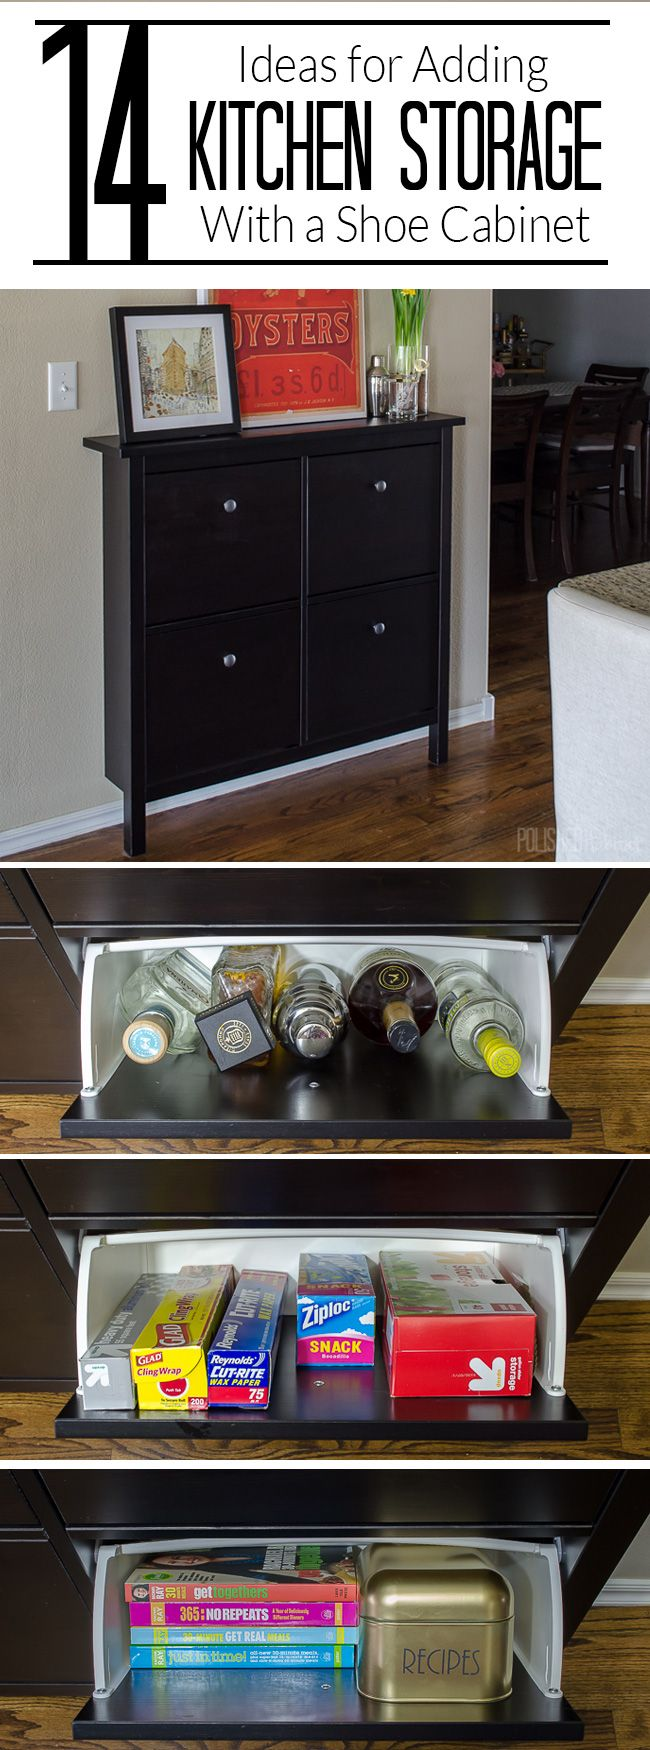 add kitchen storage in a small space - Storage For Small Spaces Rooms